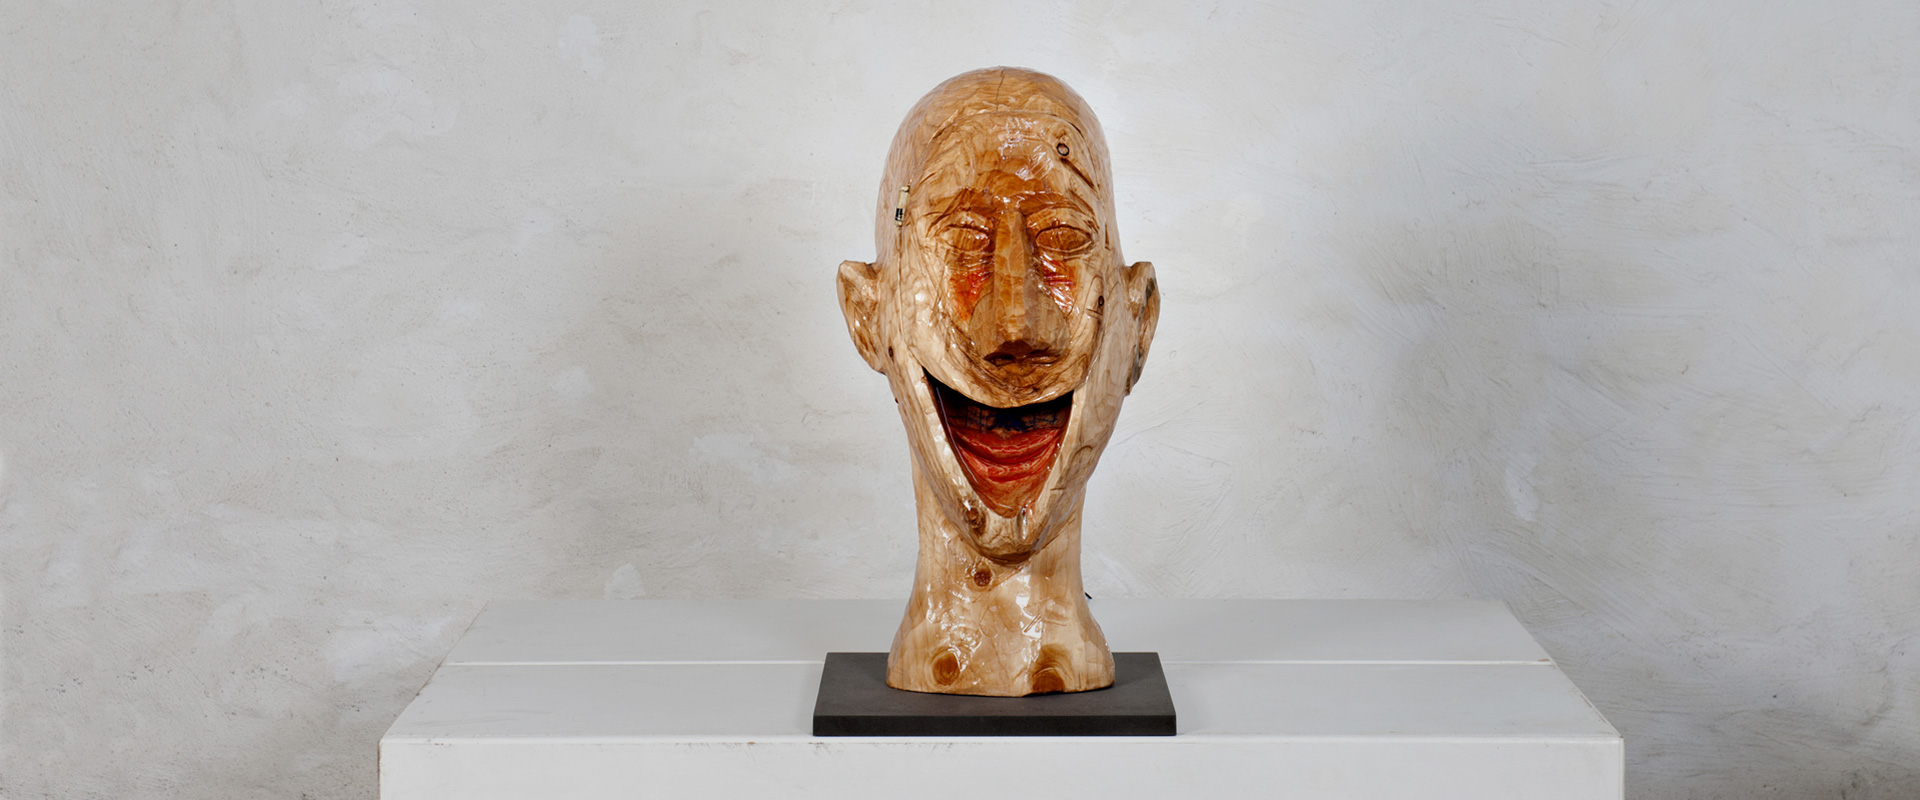 Artist Brele Scholz remoulds wooden European Heads with cast resin